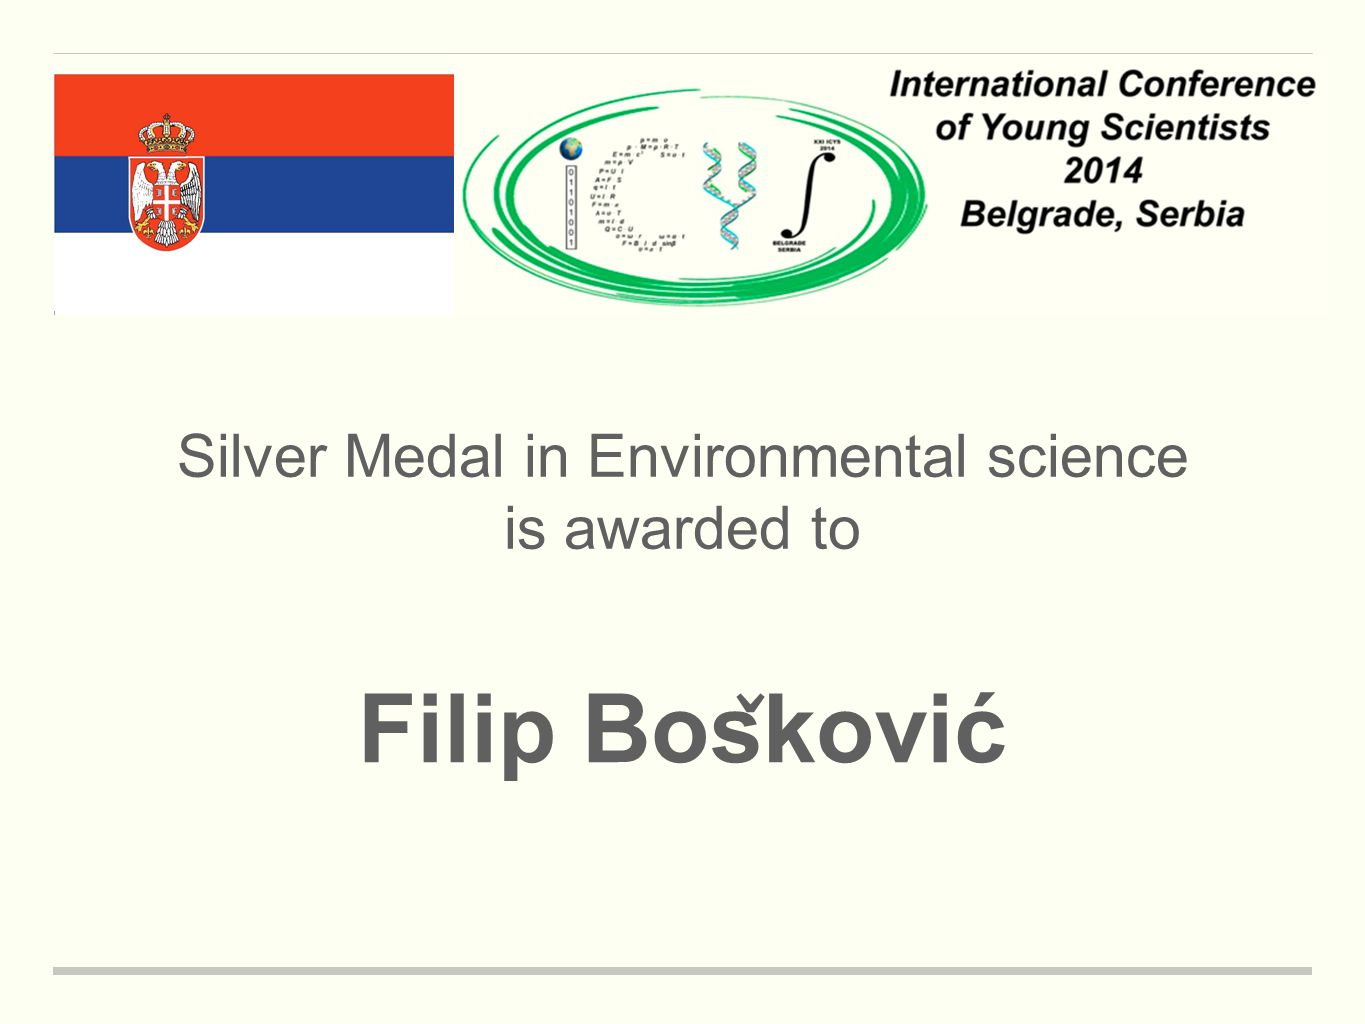 Silver Medal in Environmental science is awarded to Filip Bos ̌ ković